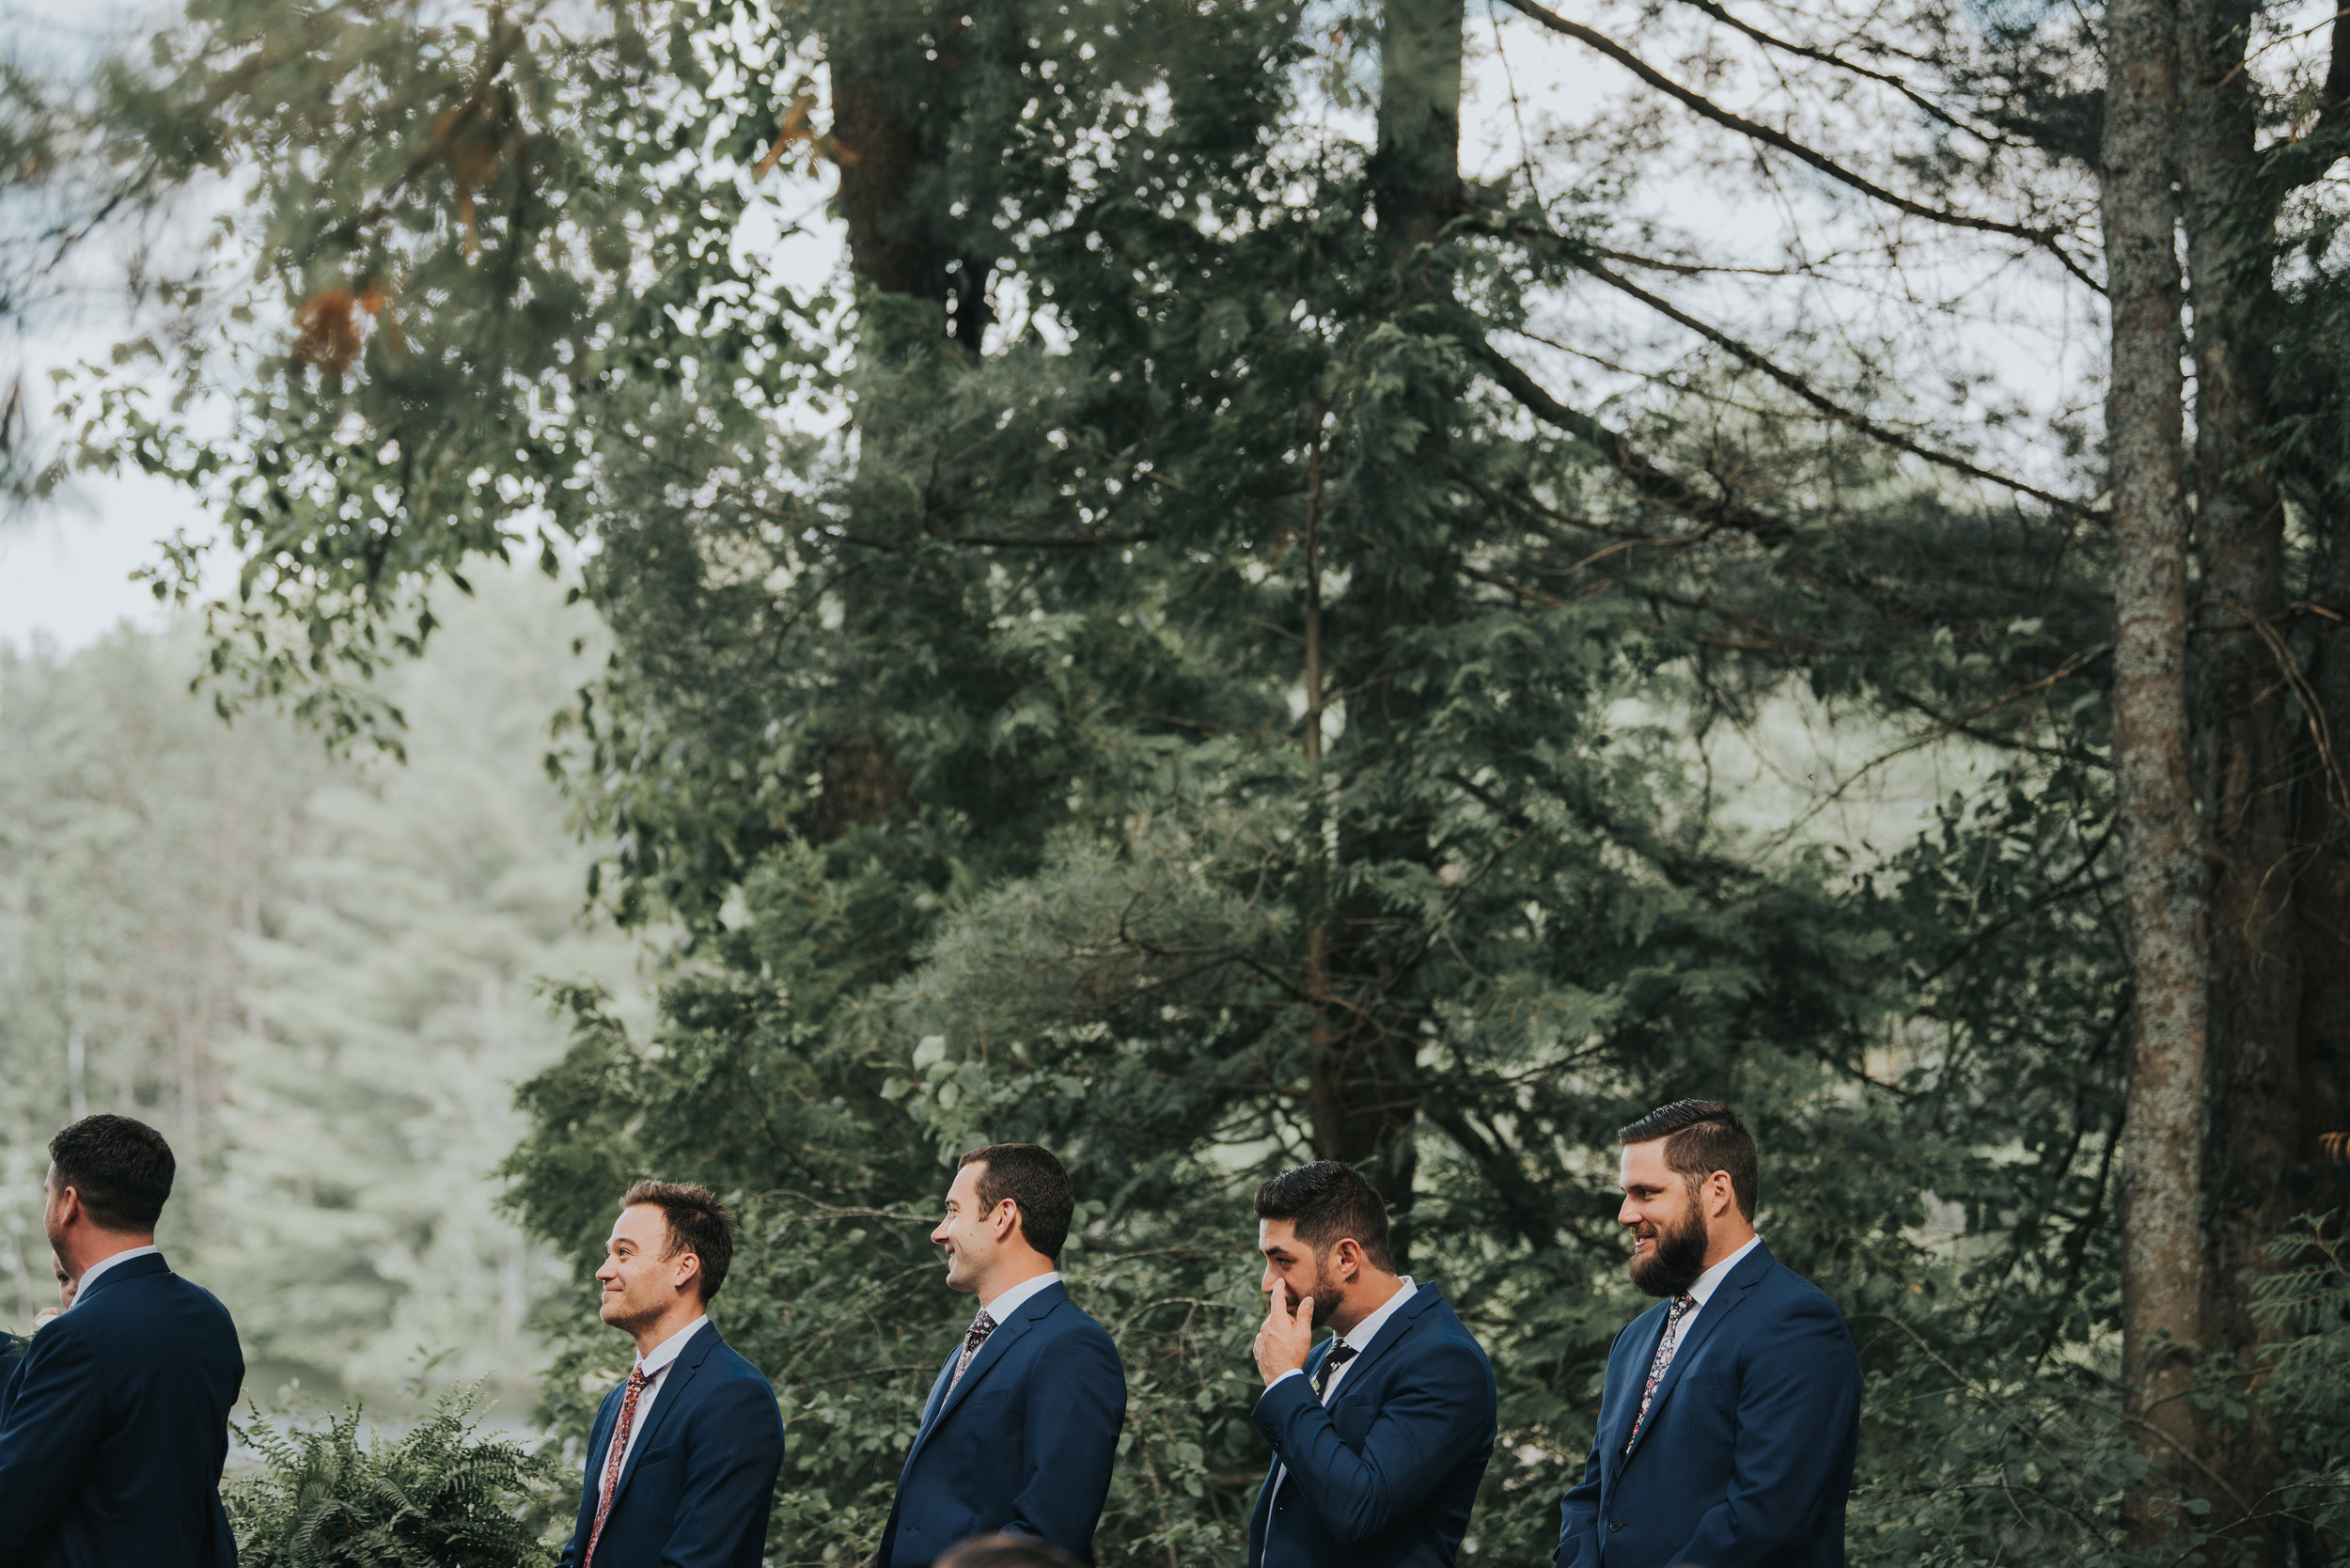 groomsmen-during-ceremony-toronto-bohemian-boho-outdoor-summer-wedding-documentary-wedding-photography-by-willow-birch-photo.jpg